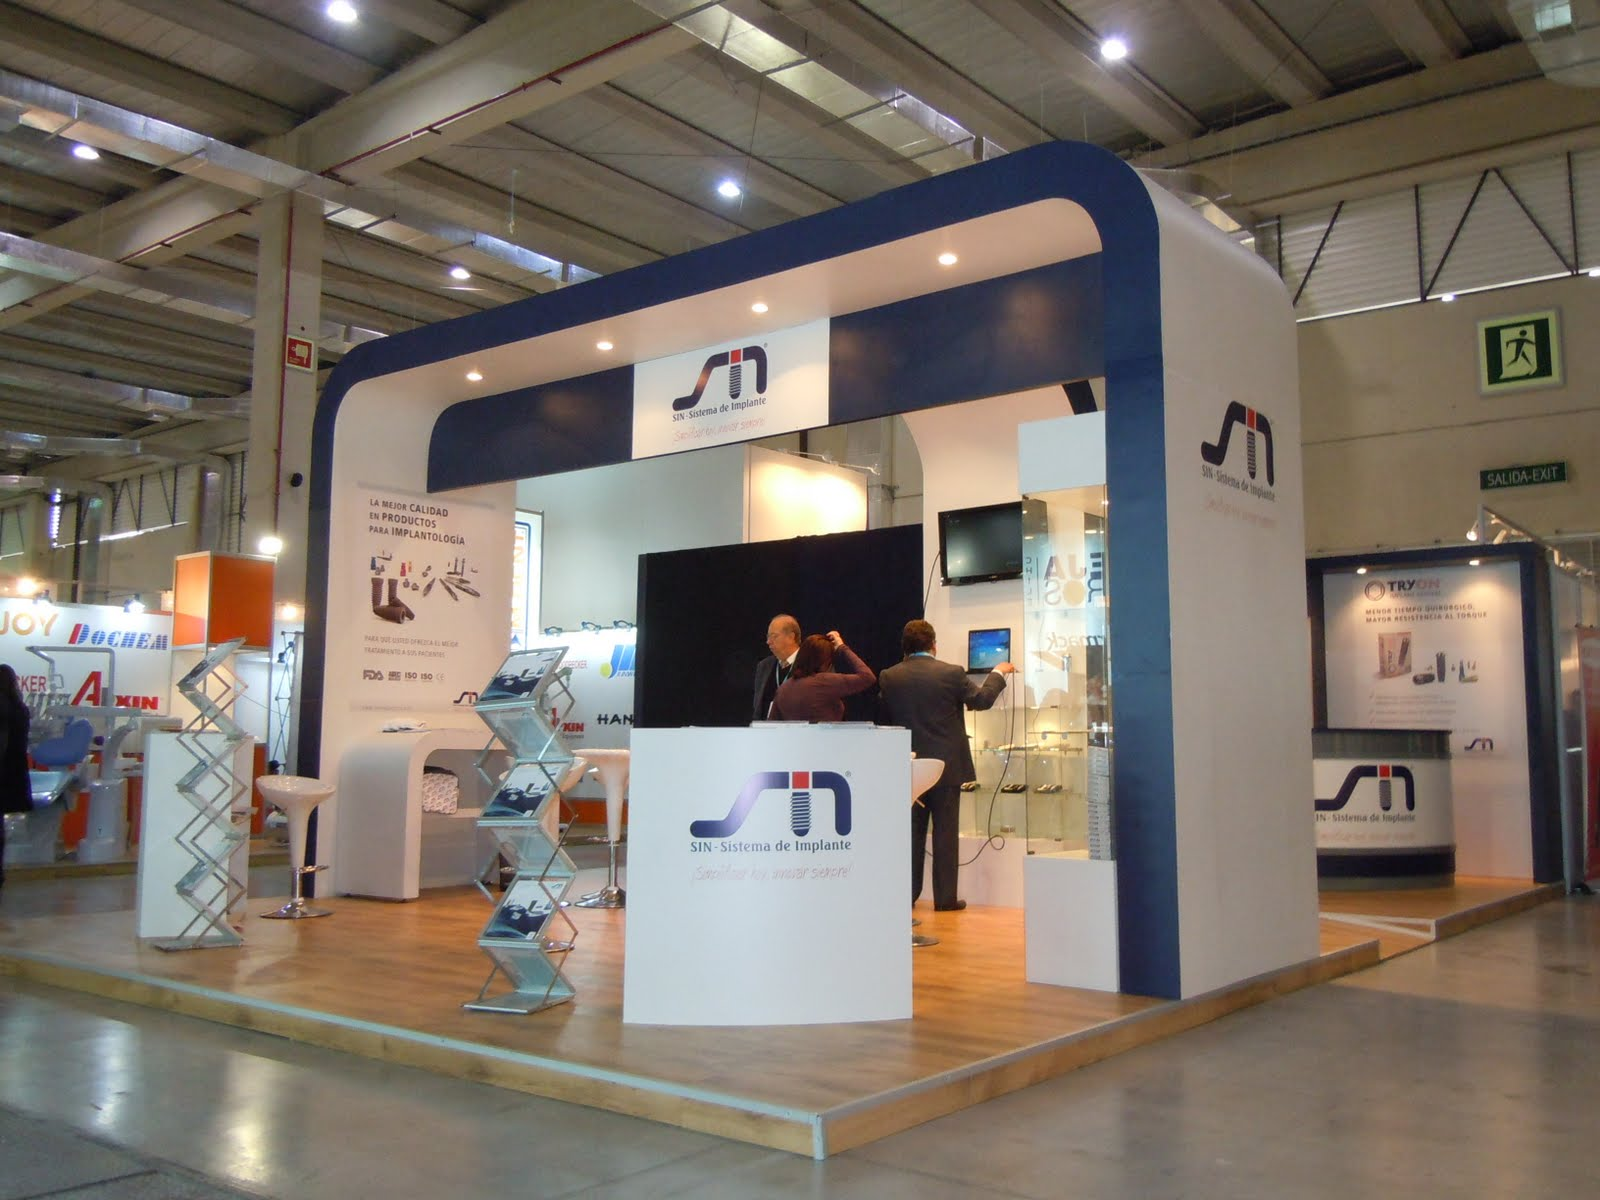 Astedise o salon dental stand sin implantes for Salon stand